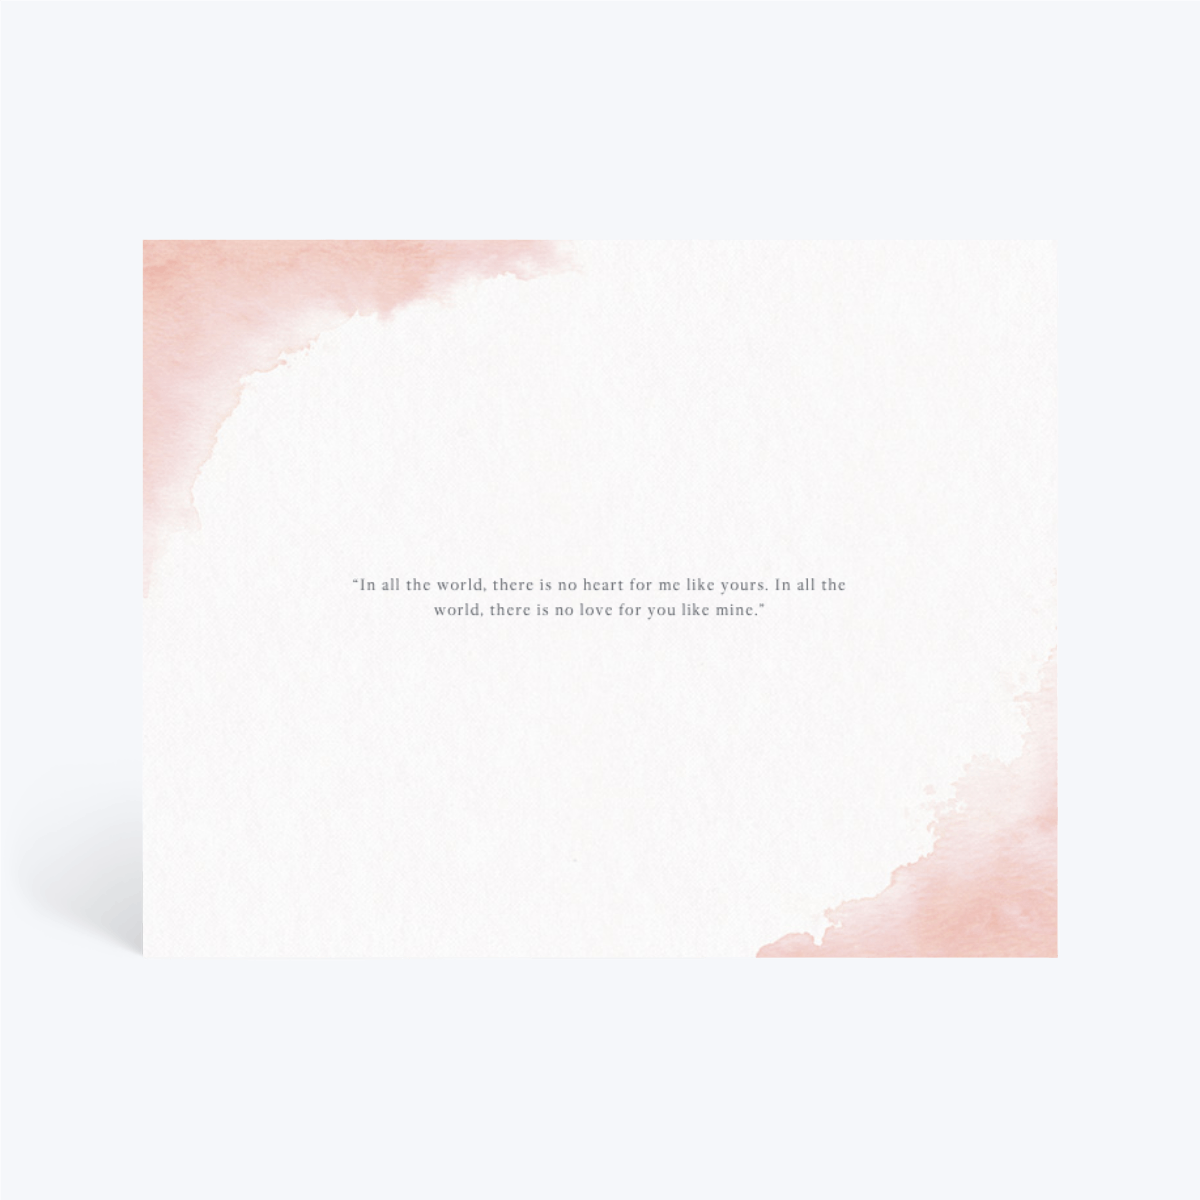 Https%3a%2f%2fwww.papier.com%2fproduct image%2f99517%2f29%2fwatercolour blush 25403 back 1578342076.png?ixlib=rb 1.1